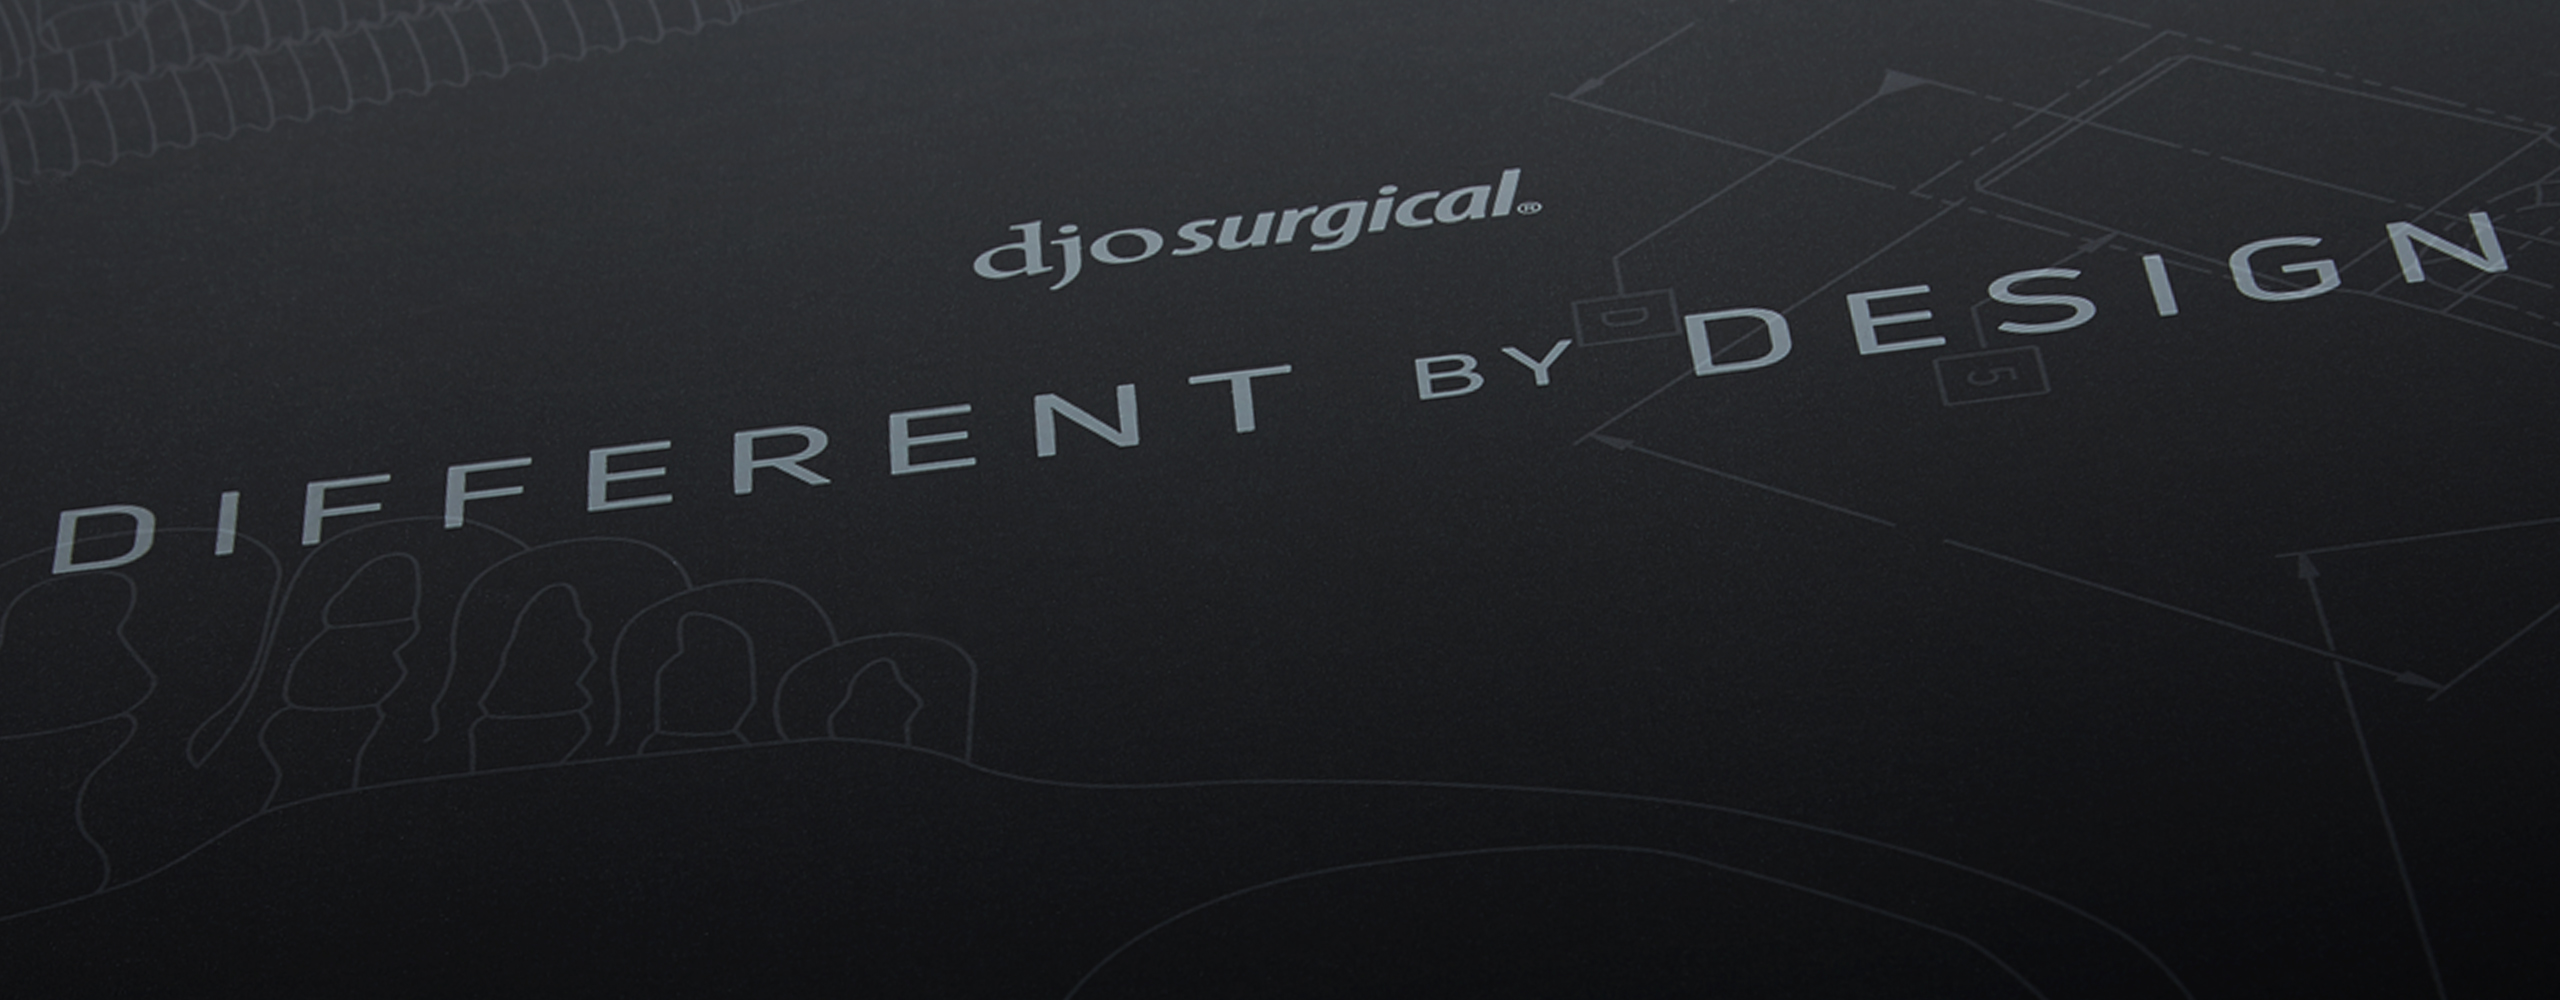 Creative design for DJO Surgical packaging